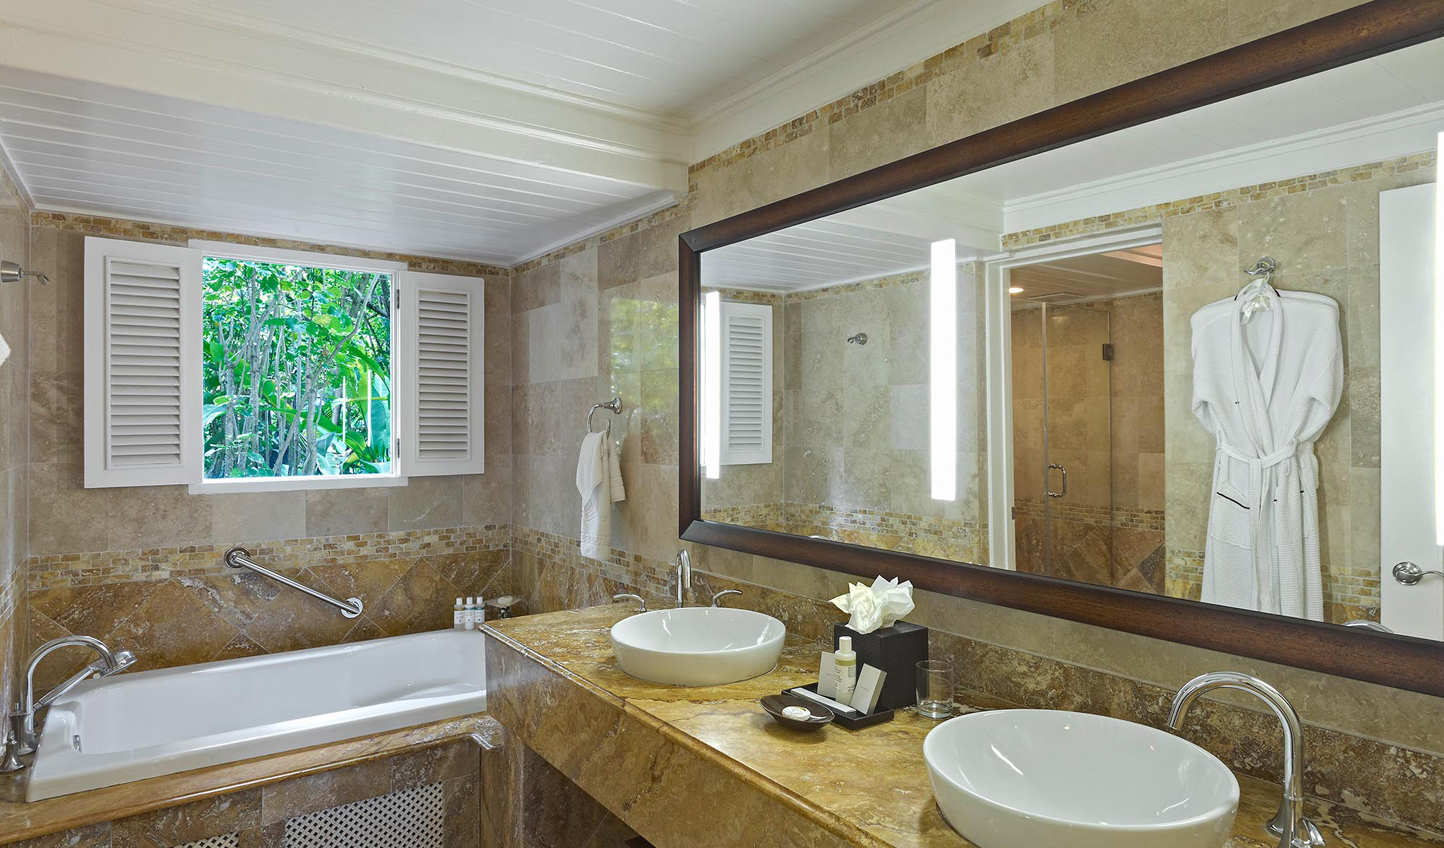 Marble bathrooms bring all the luxury of a grand hotel